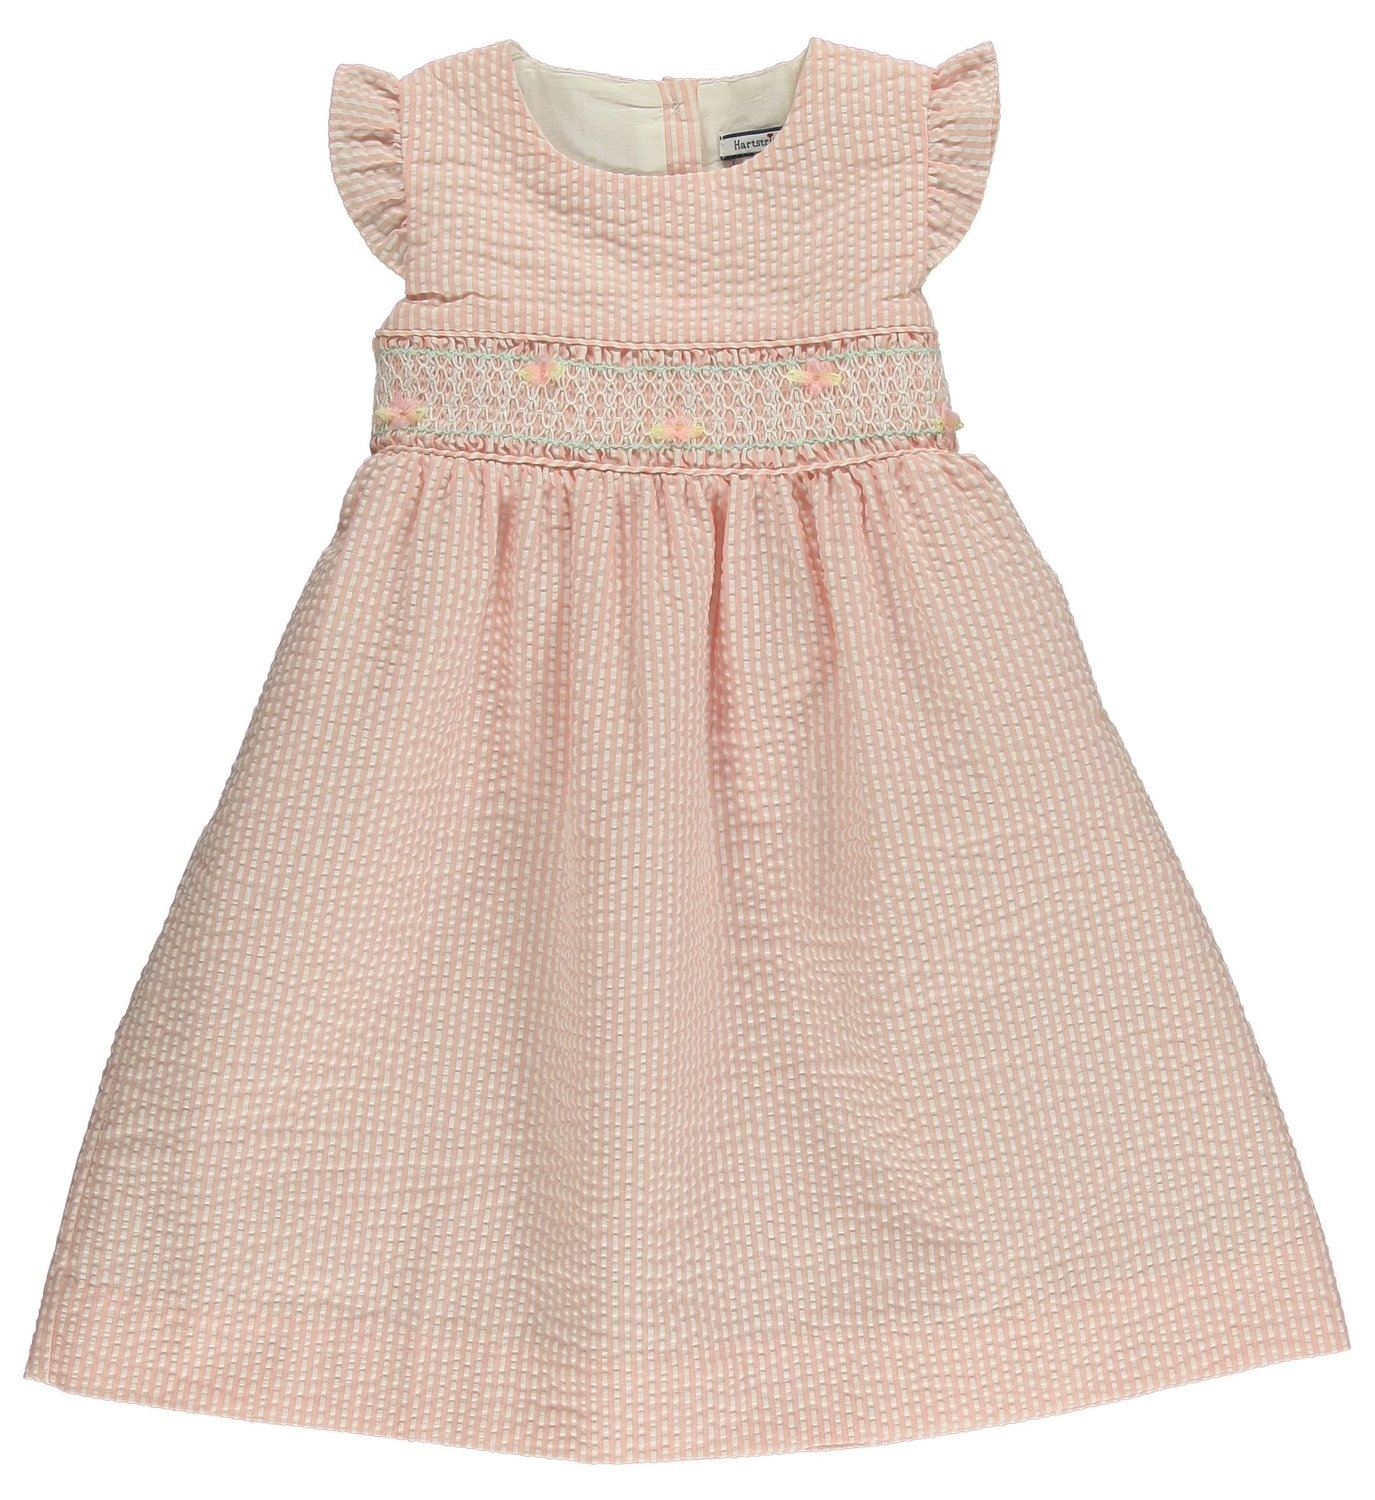 0c2a1983a864 Hartstrings Apricot Dress - Baby Designer Clothes